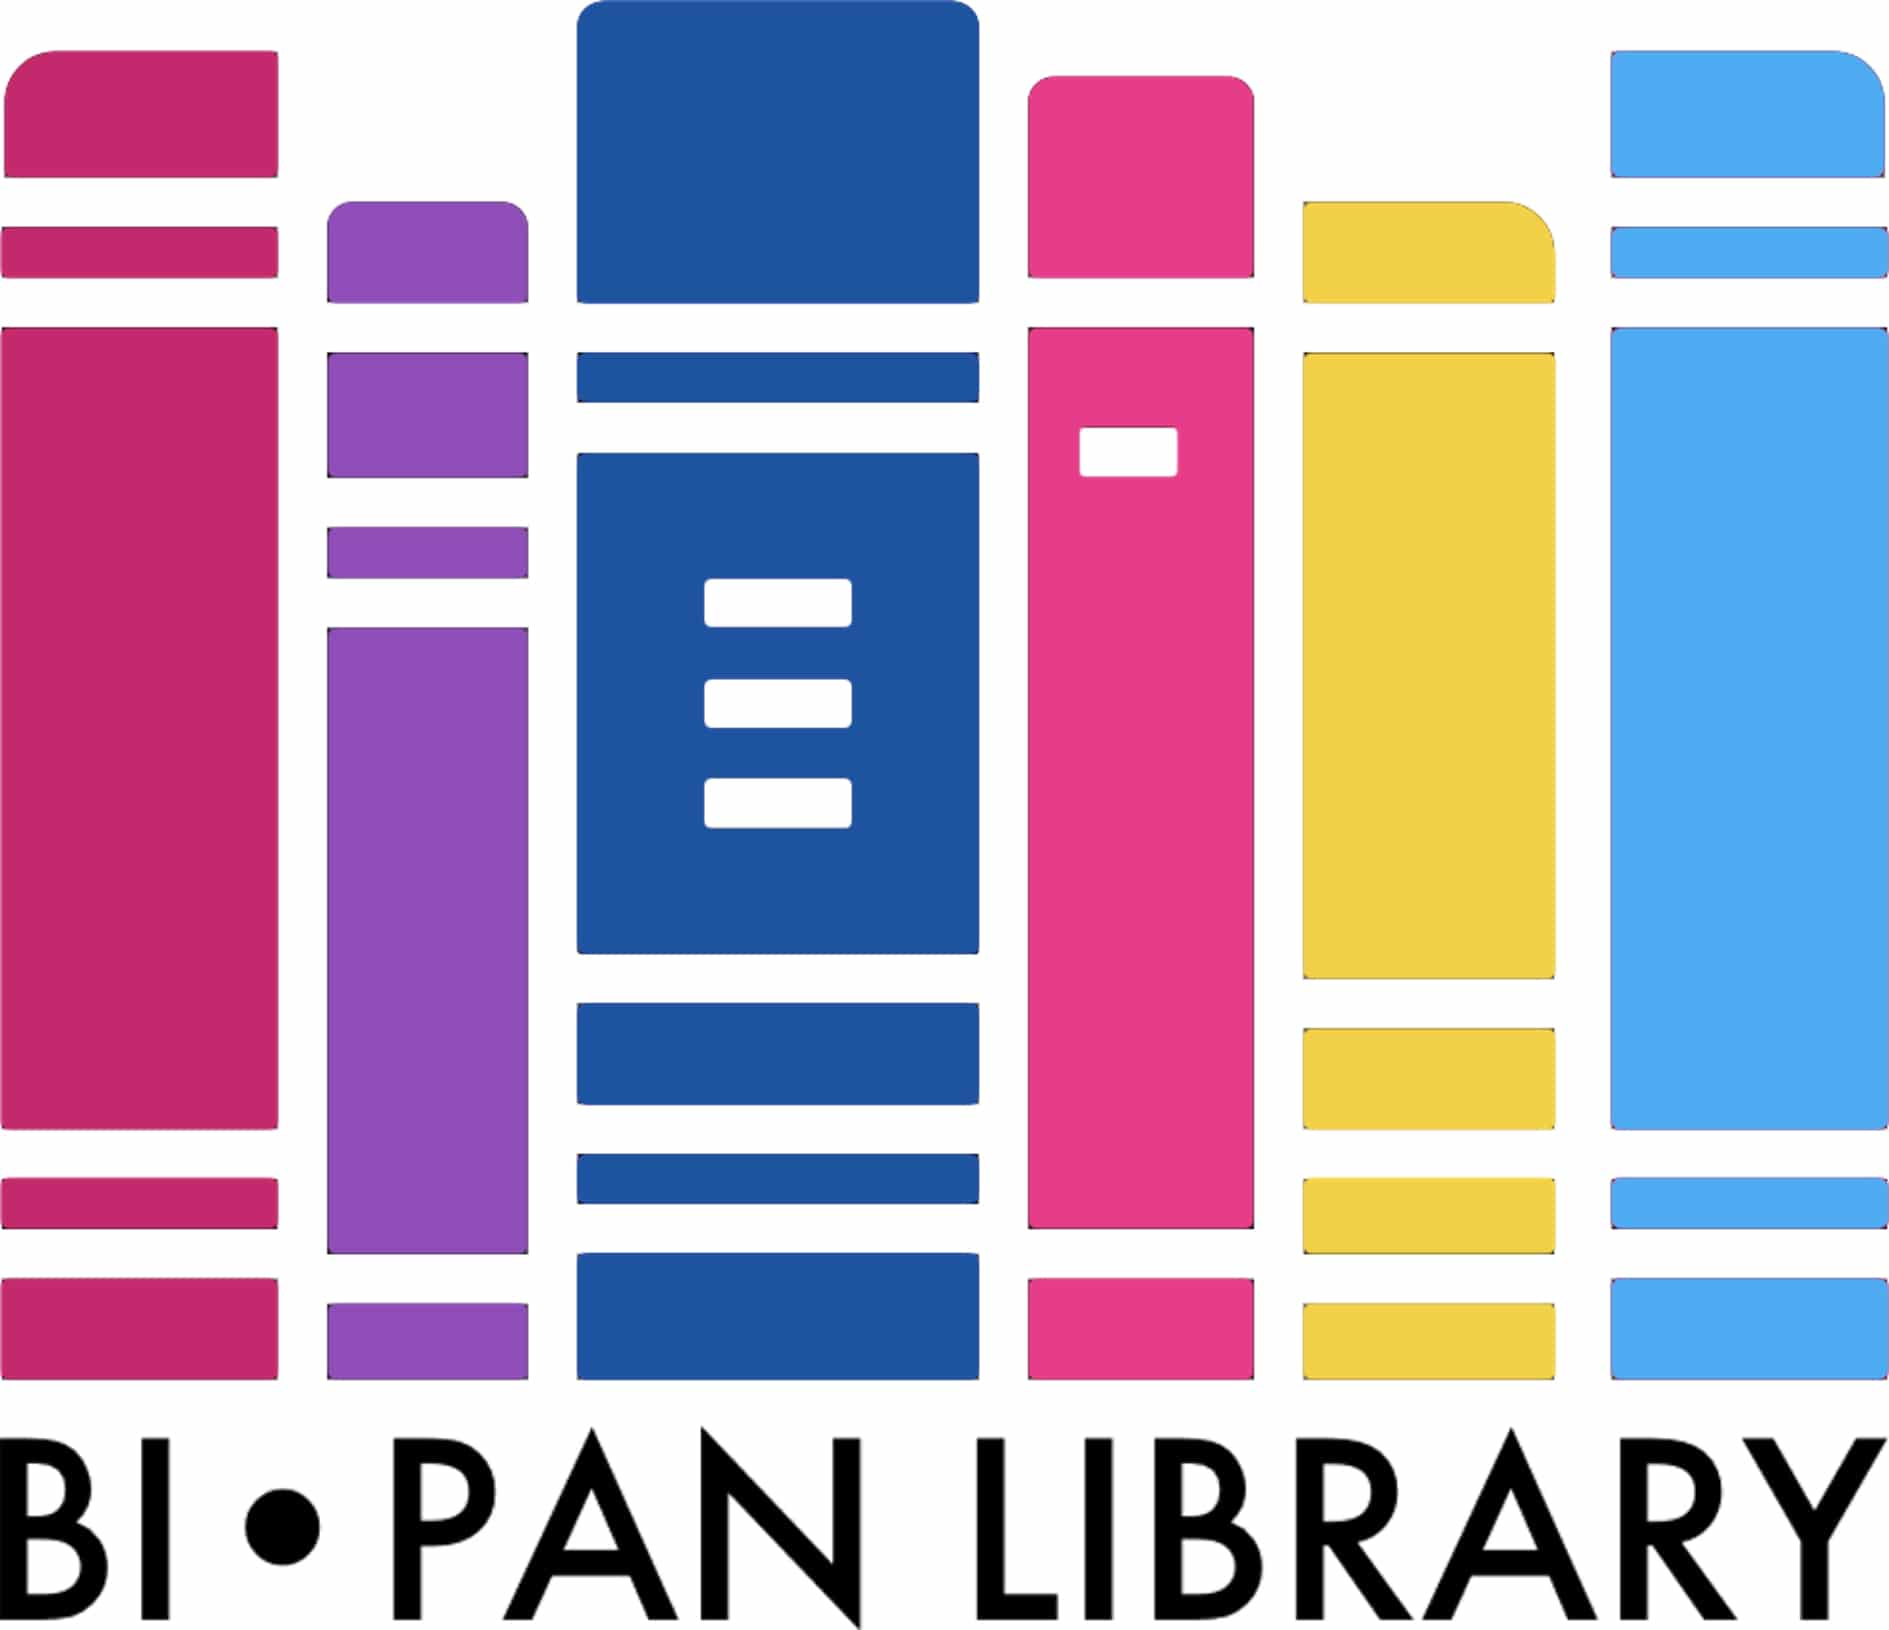 Bi Pan Library logo, a bookshelf of bisexual and pansexual flag colors.